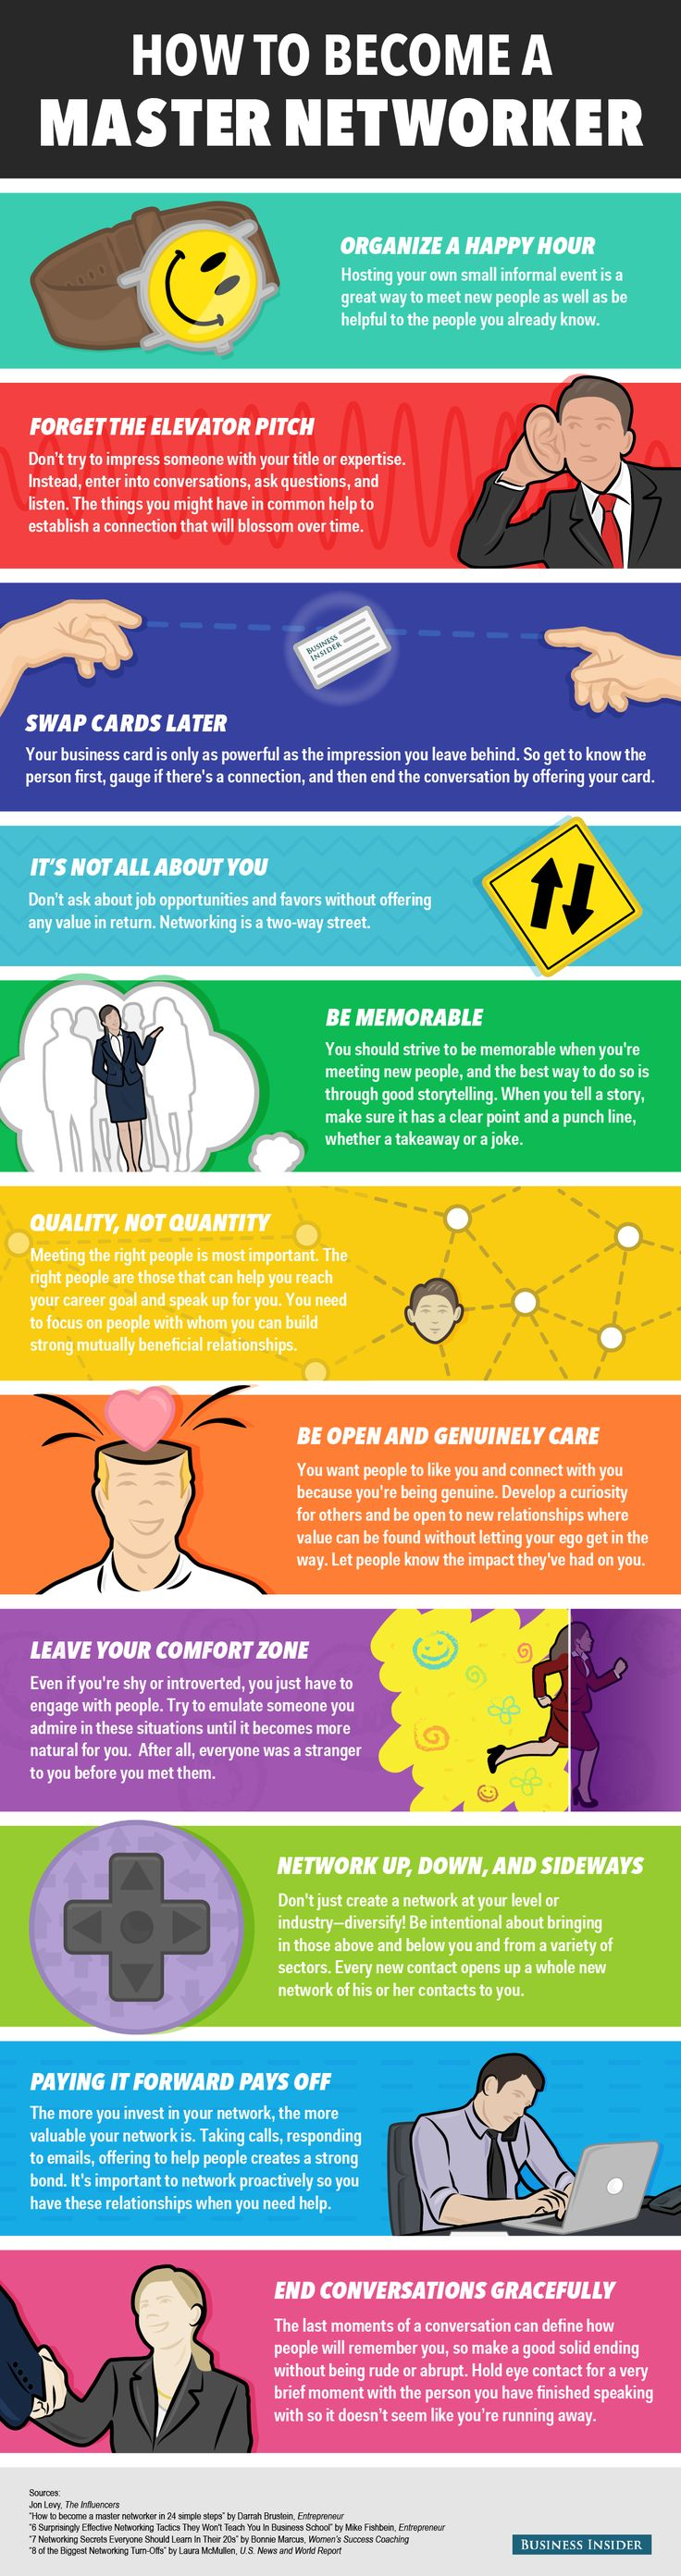 11 Ways to Become a Master Networker [Infographic] http://blog.hubspot.com/sales/ways-to-become-a-master-networker?utm_content=buffer9bdc5&utm_medium=social&utm_source=pinterest.com&utm_campaign=buffer #networking #sales